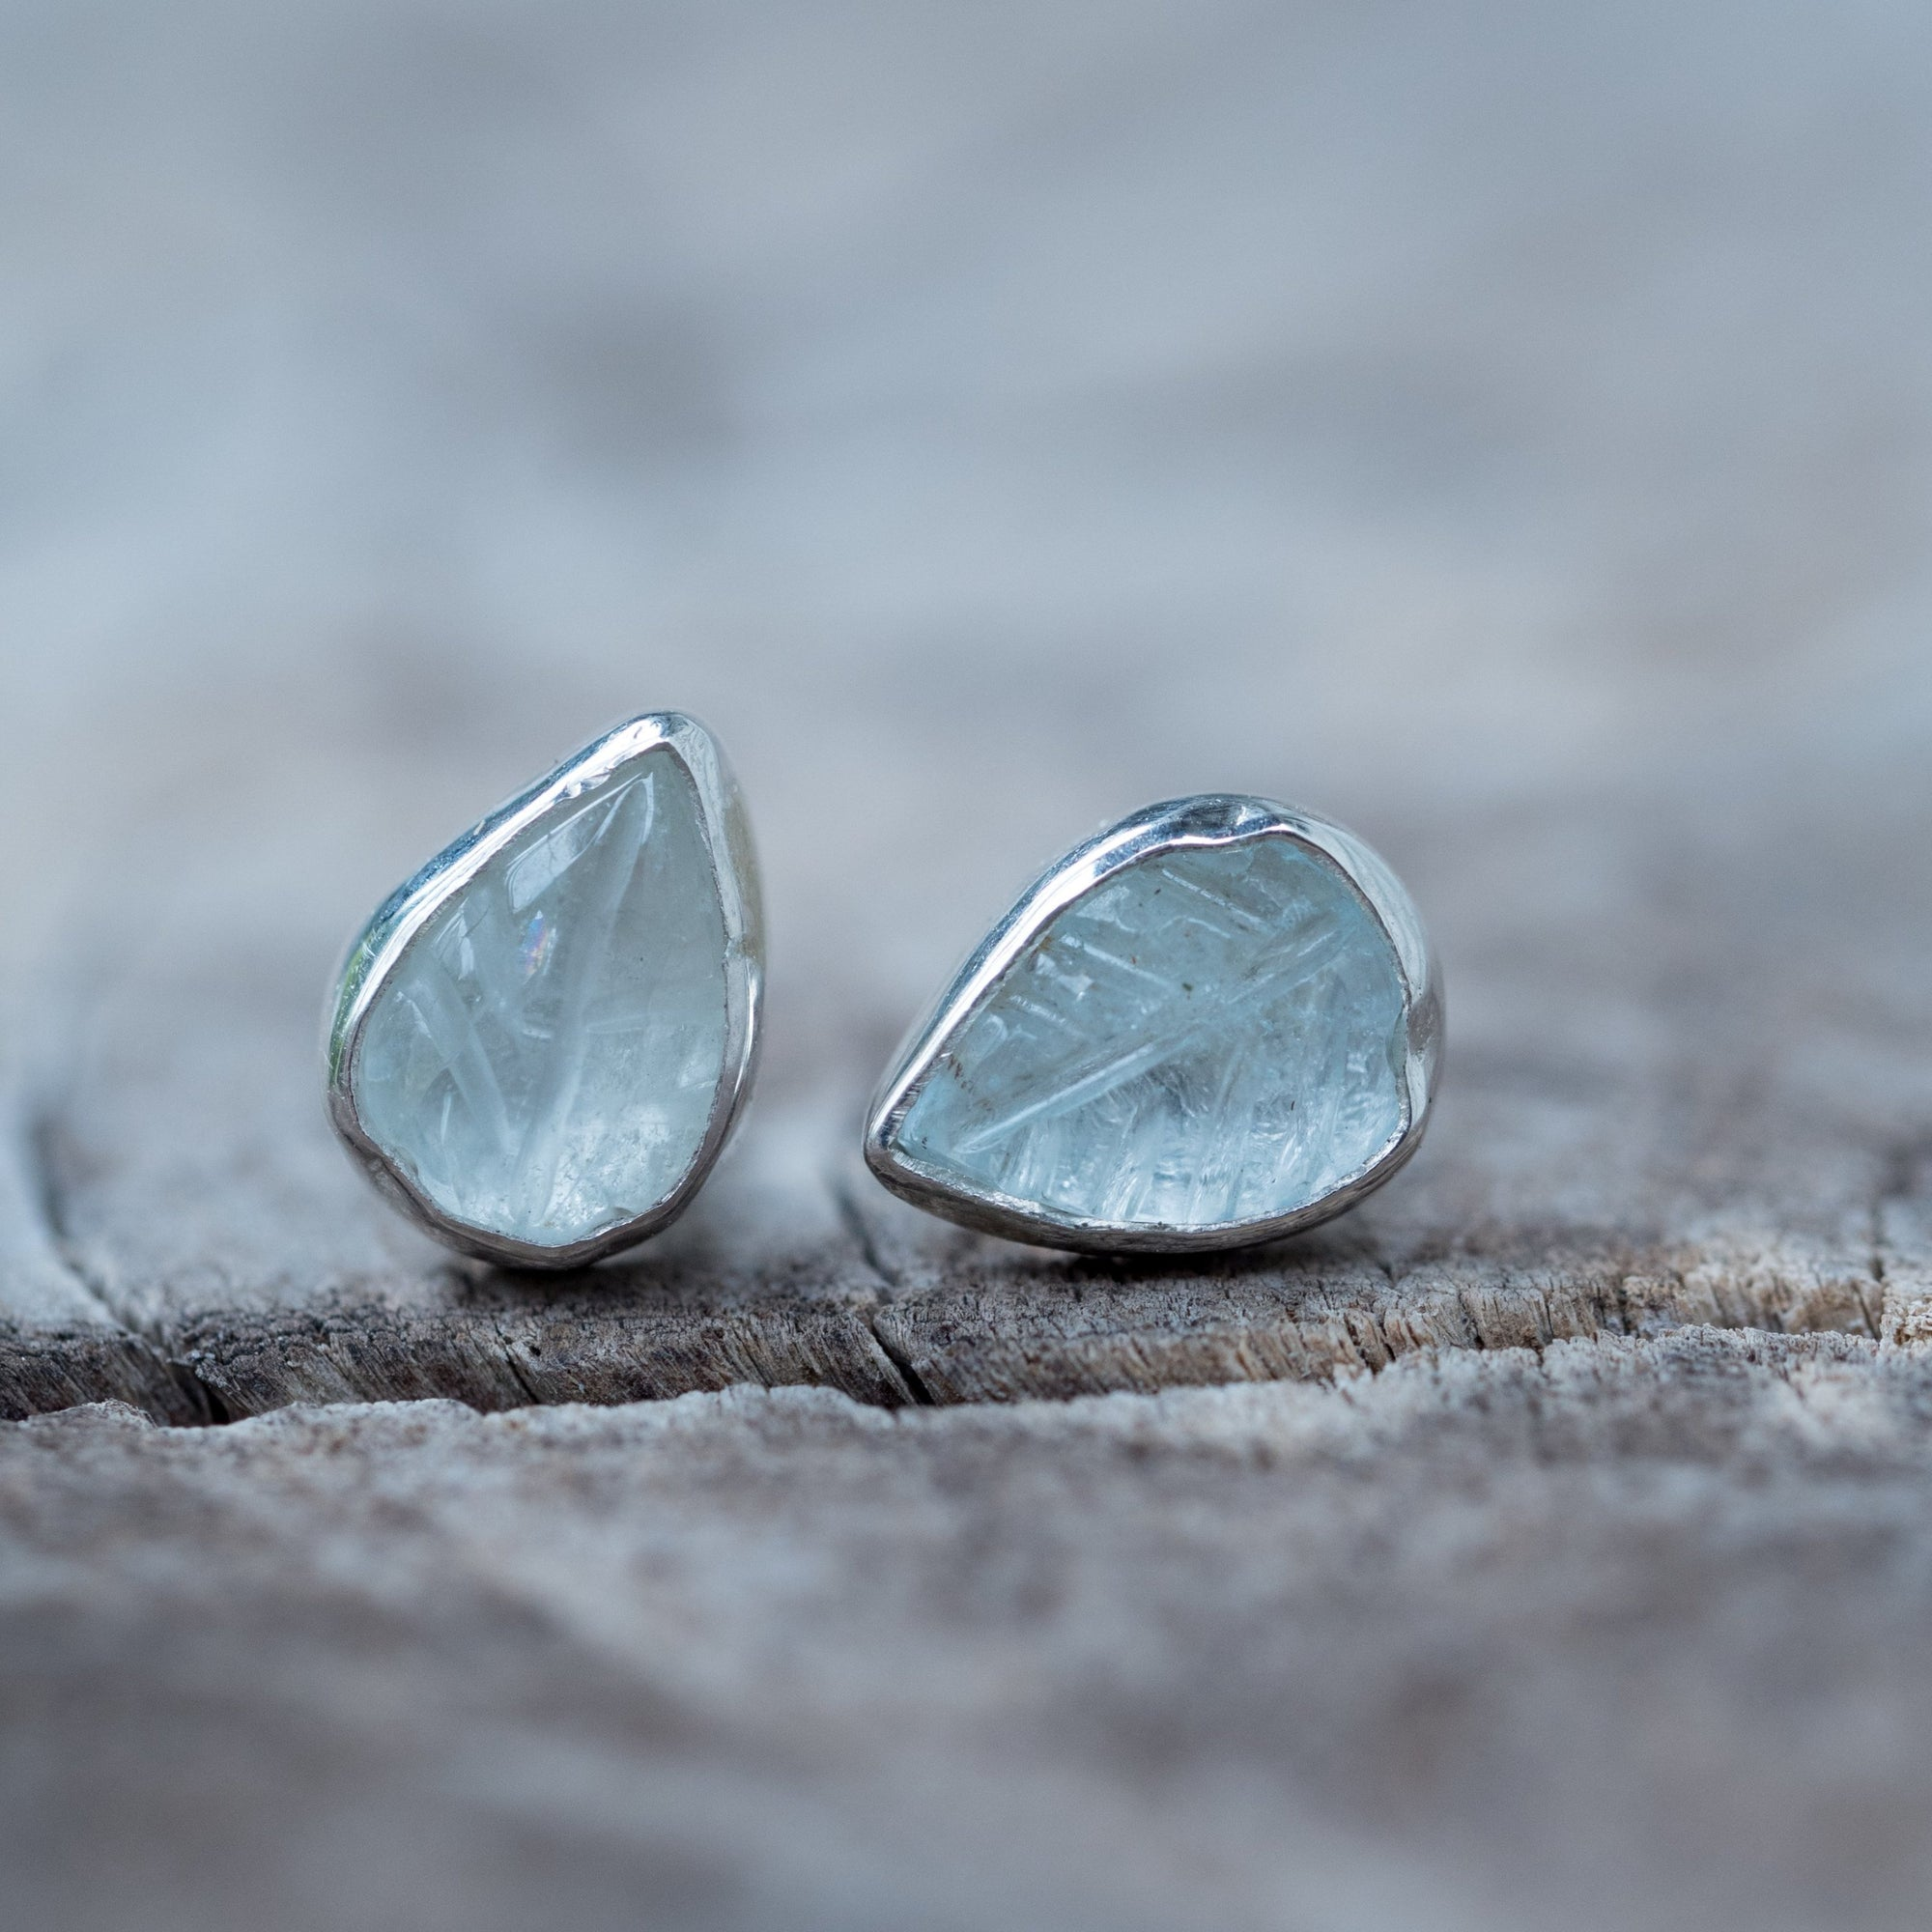 Aquamarine Leaf Earrings - Gardens of the Sun Jewelry